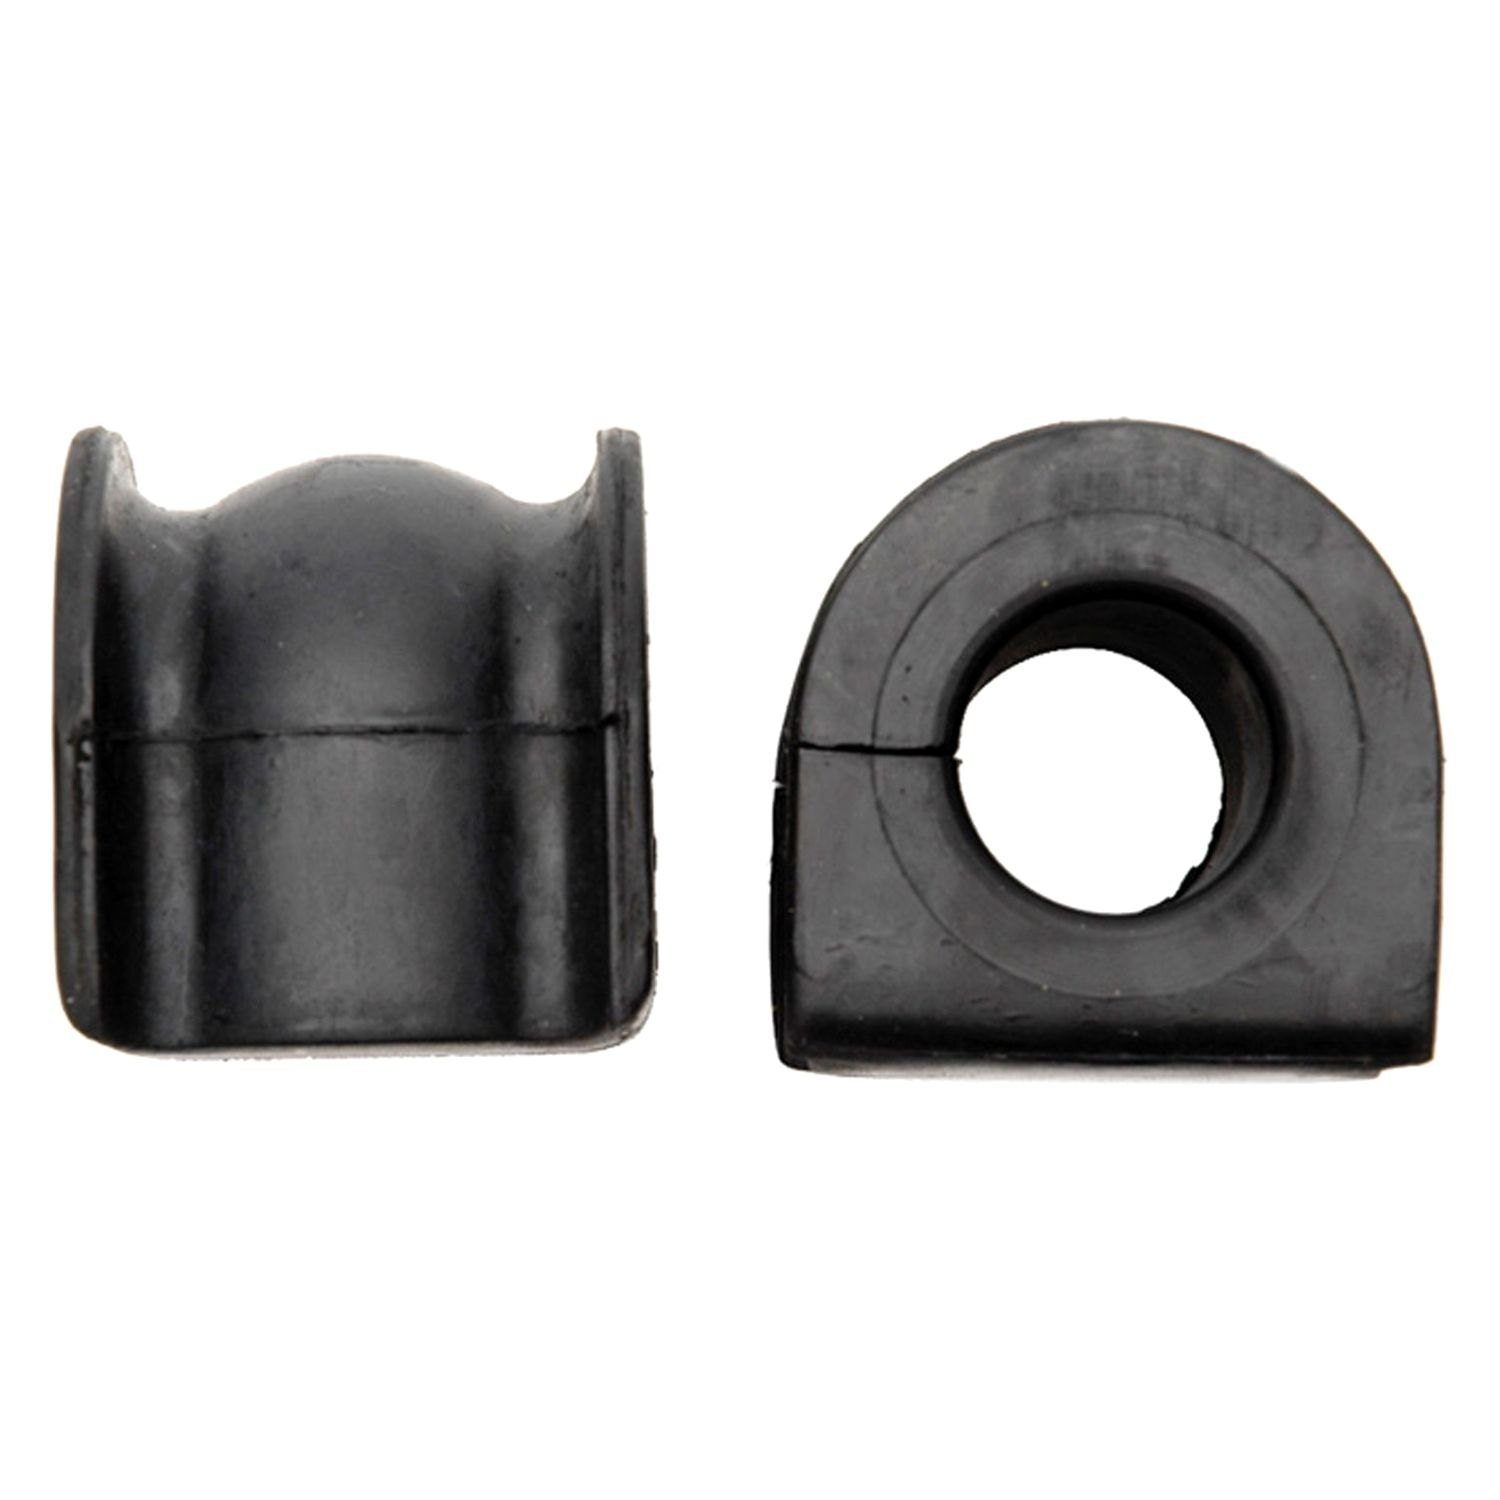 Acura MDX 2012 Professional™ Sway Bar Bushings